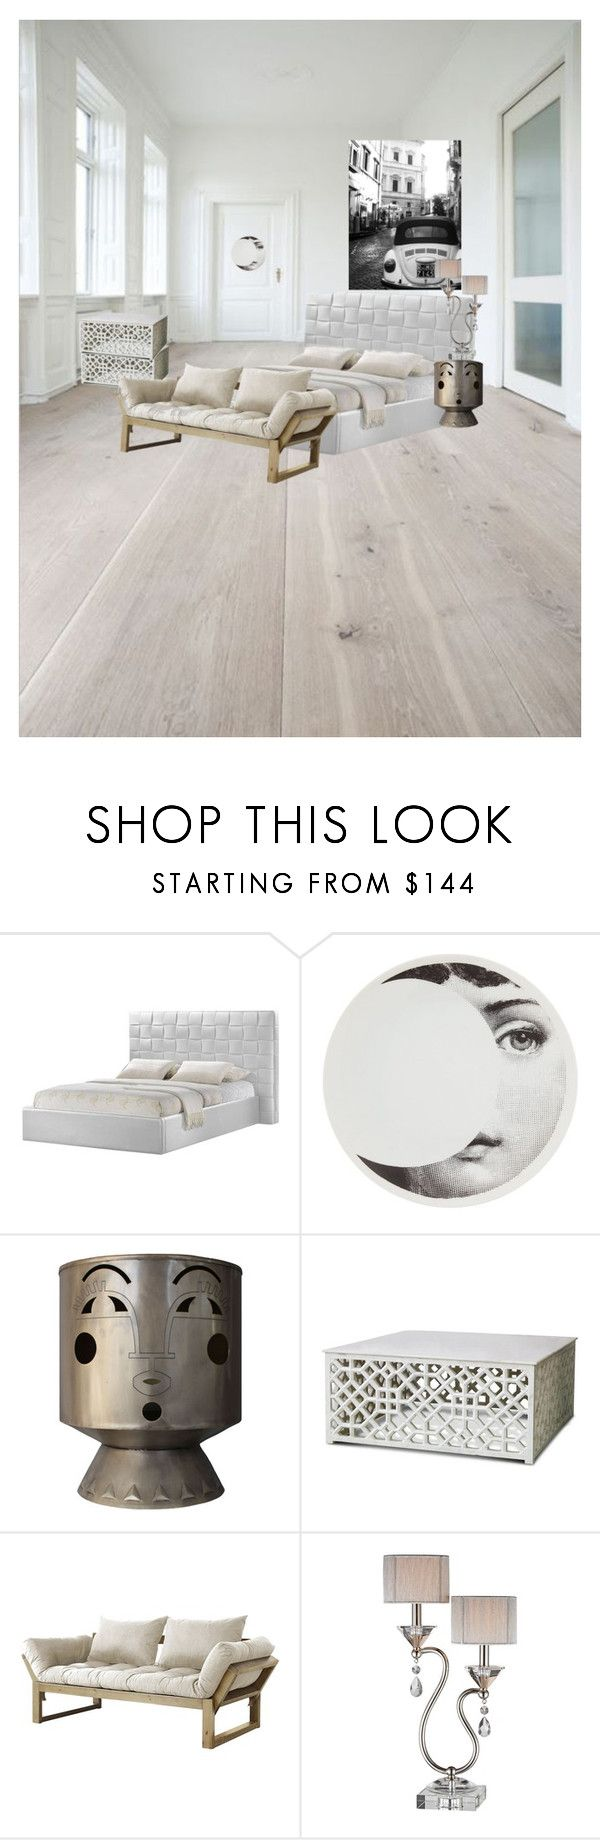 """Eclectic Bedroom"" by dprice15 ❤ liked on Polyvore featuring interior, interiors, interior design, home, home decor, interior decorating, Baxton Studio, Fornasetti, Selamat and Fresh Futon"